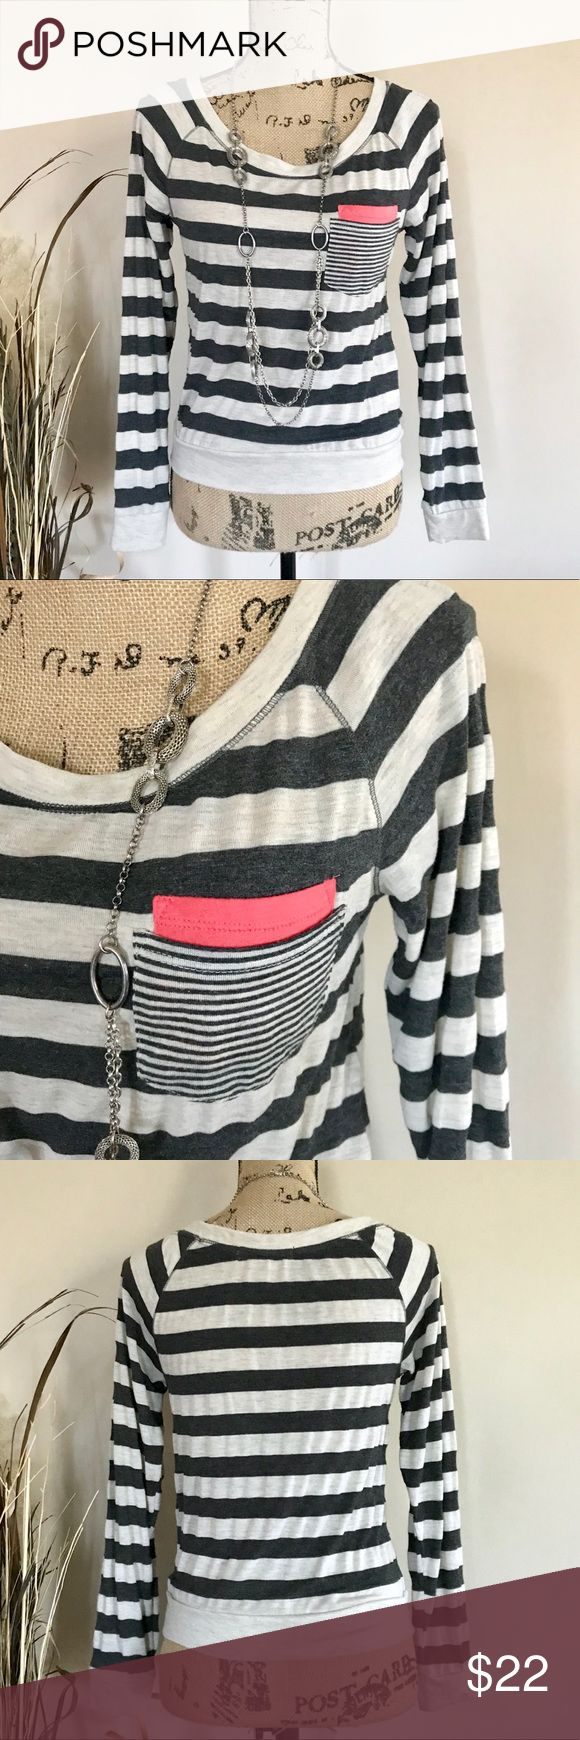 """Neutral striped tee Cute and comfy long sleeve top by Rewind. Brown and tan oatmeal striped with a splash of melon accent pocket. Wide neckline, banded hem and cuffs. Size M. Excellent condition. 50% polyester 50% rayon. Machine wash. Approx measurements, bust 16 1/2"""", length 21"""". Hits at natural waist. ⭐️ Rewind Tops Tees - Long Sleeve"""